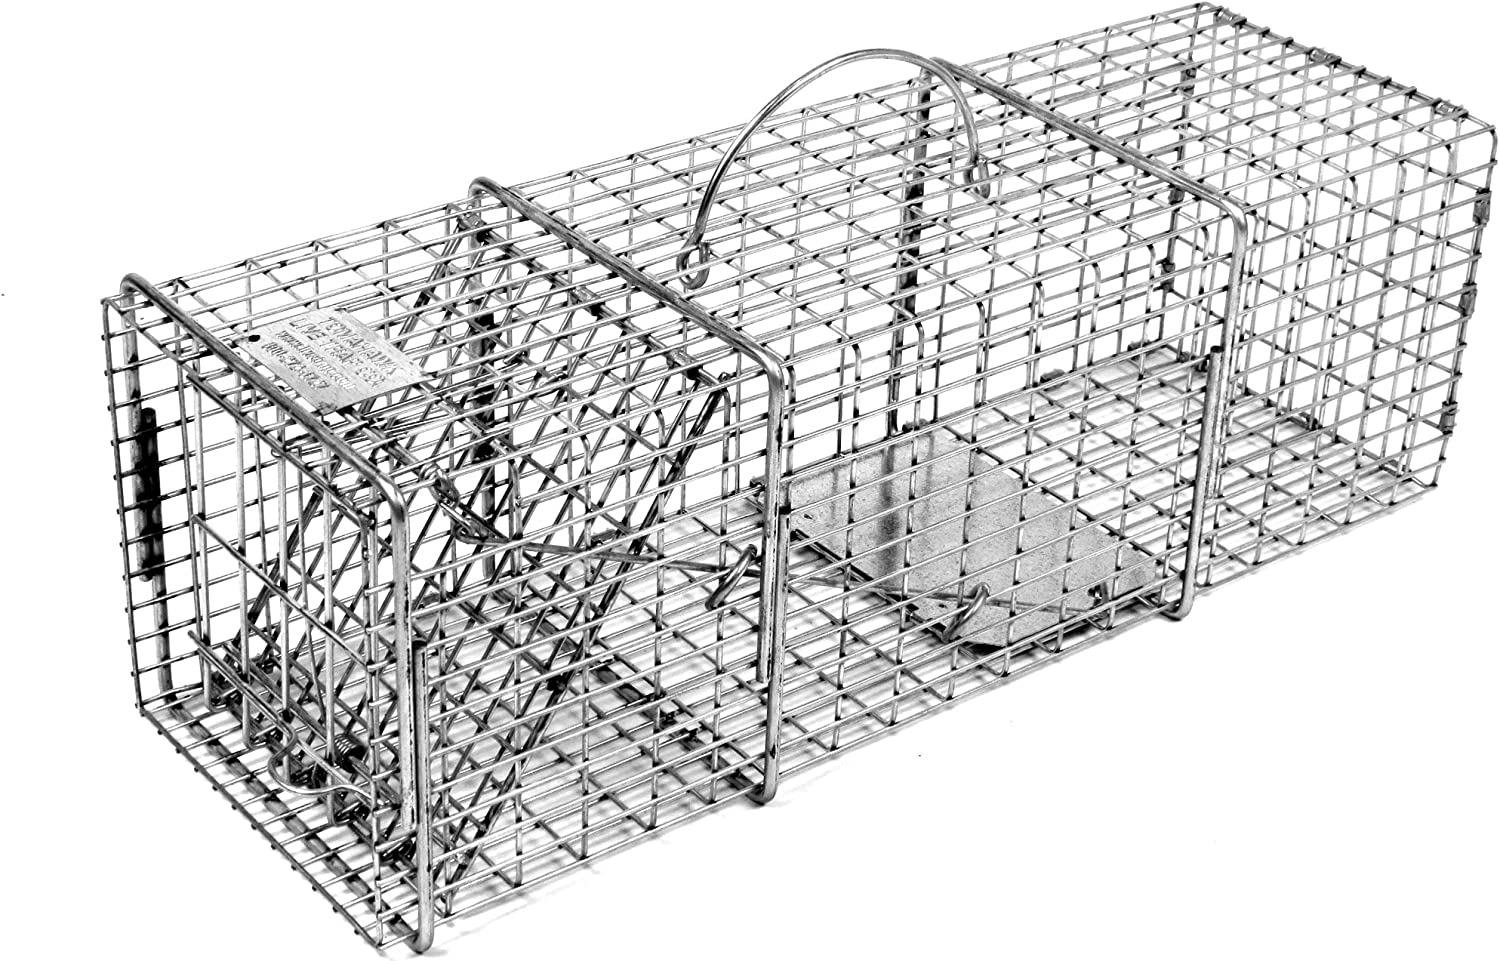 Tomahawk price Professional Series Rigid Trap Gorgeous and Muskra for Squirrels